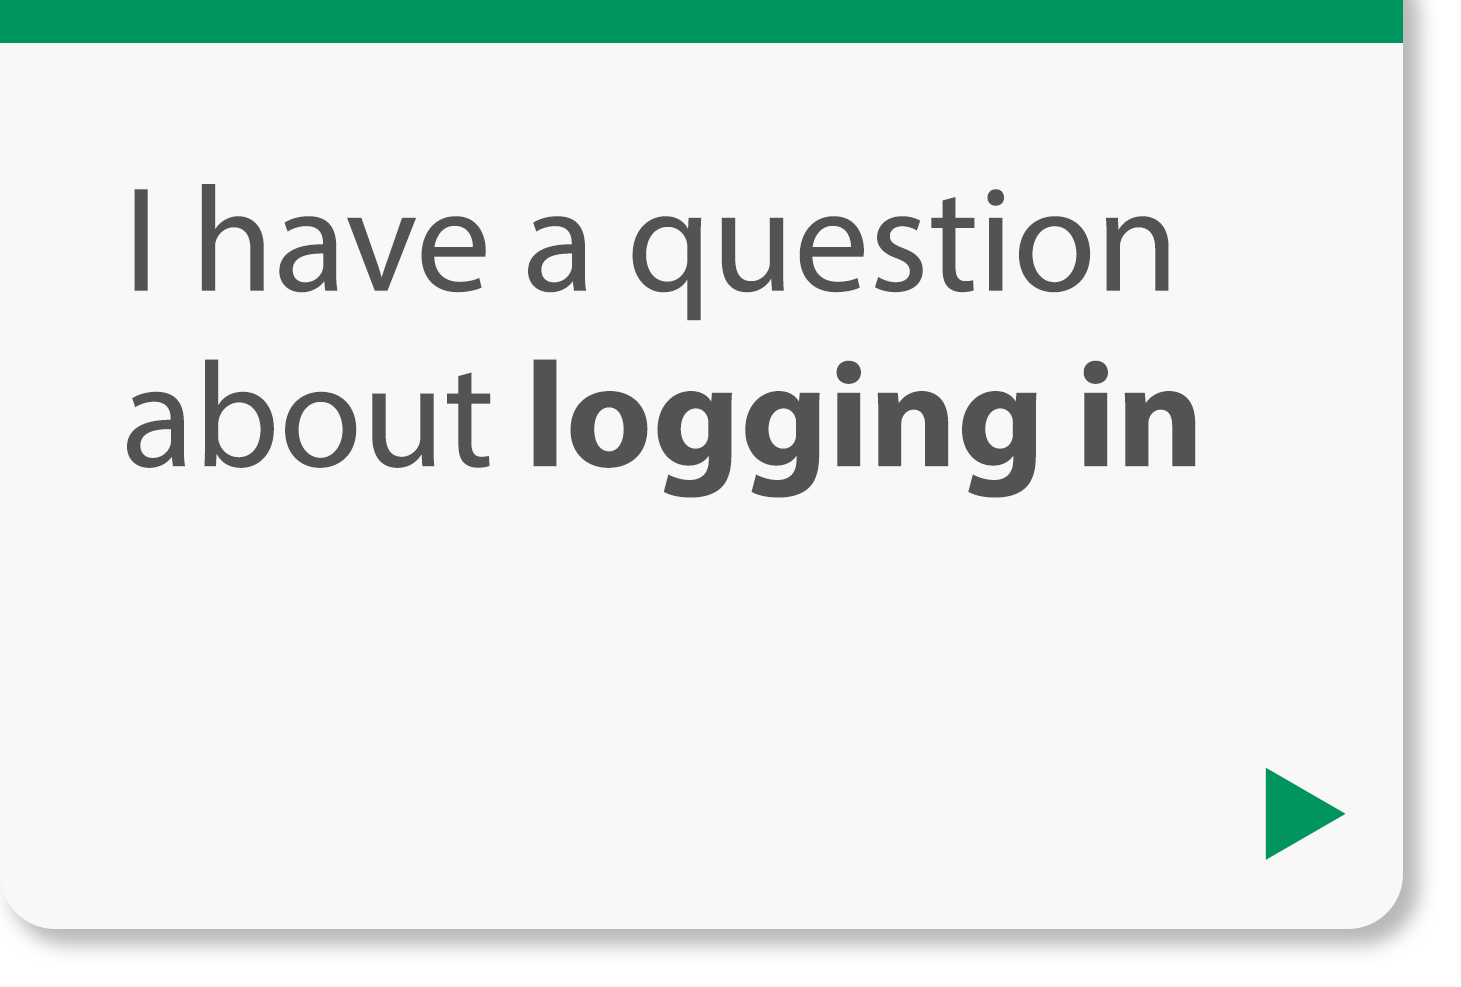 I have a question about logging in